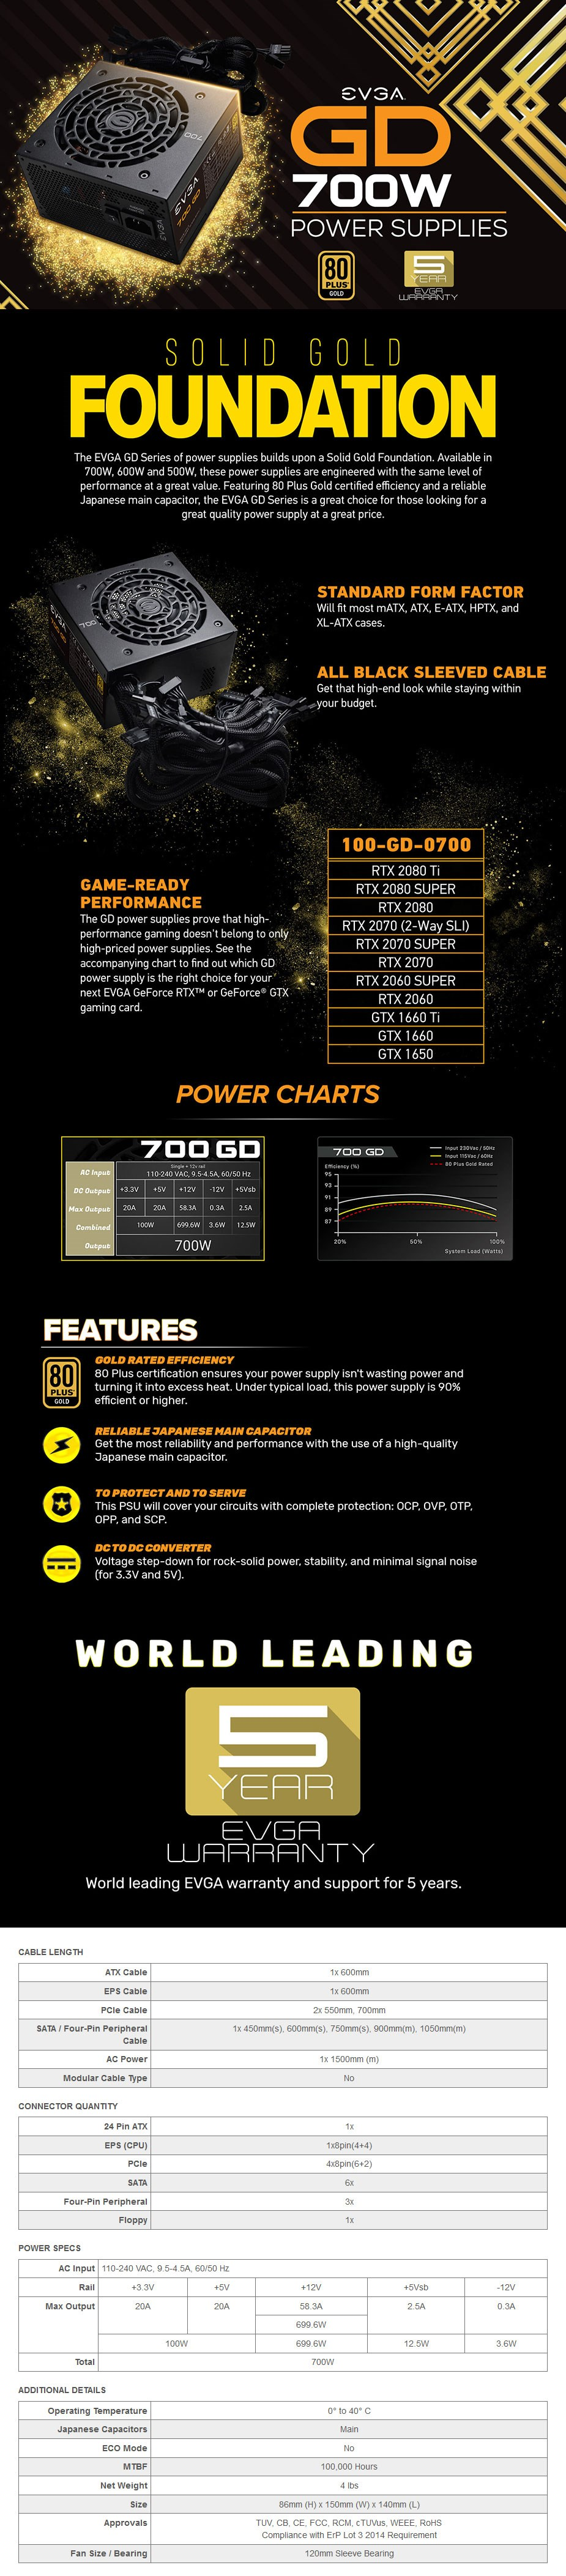 EVGA 700 GD 700W 80+ Gold Non-Modular Power Supply - Desktop Overview 1